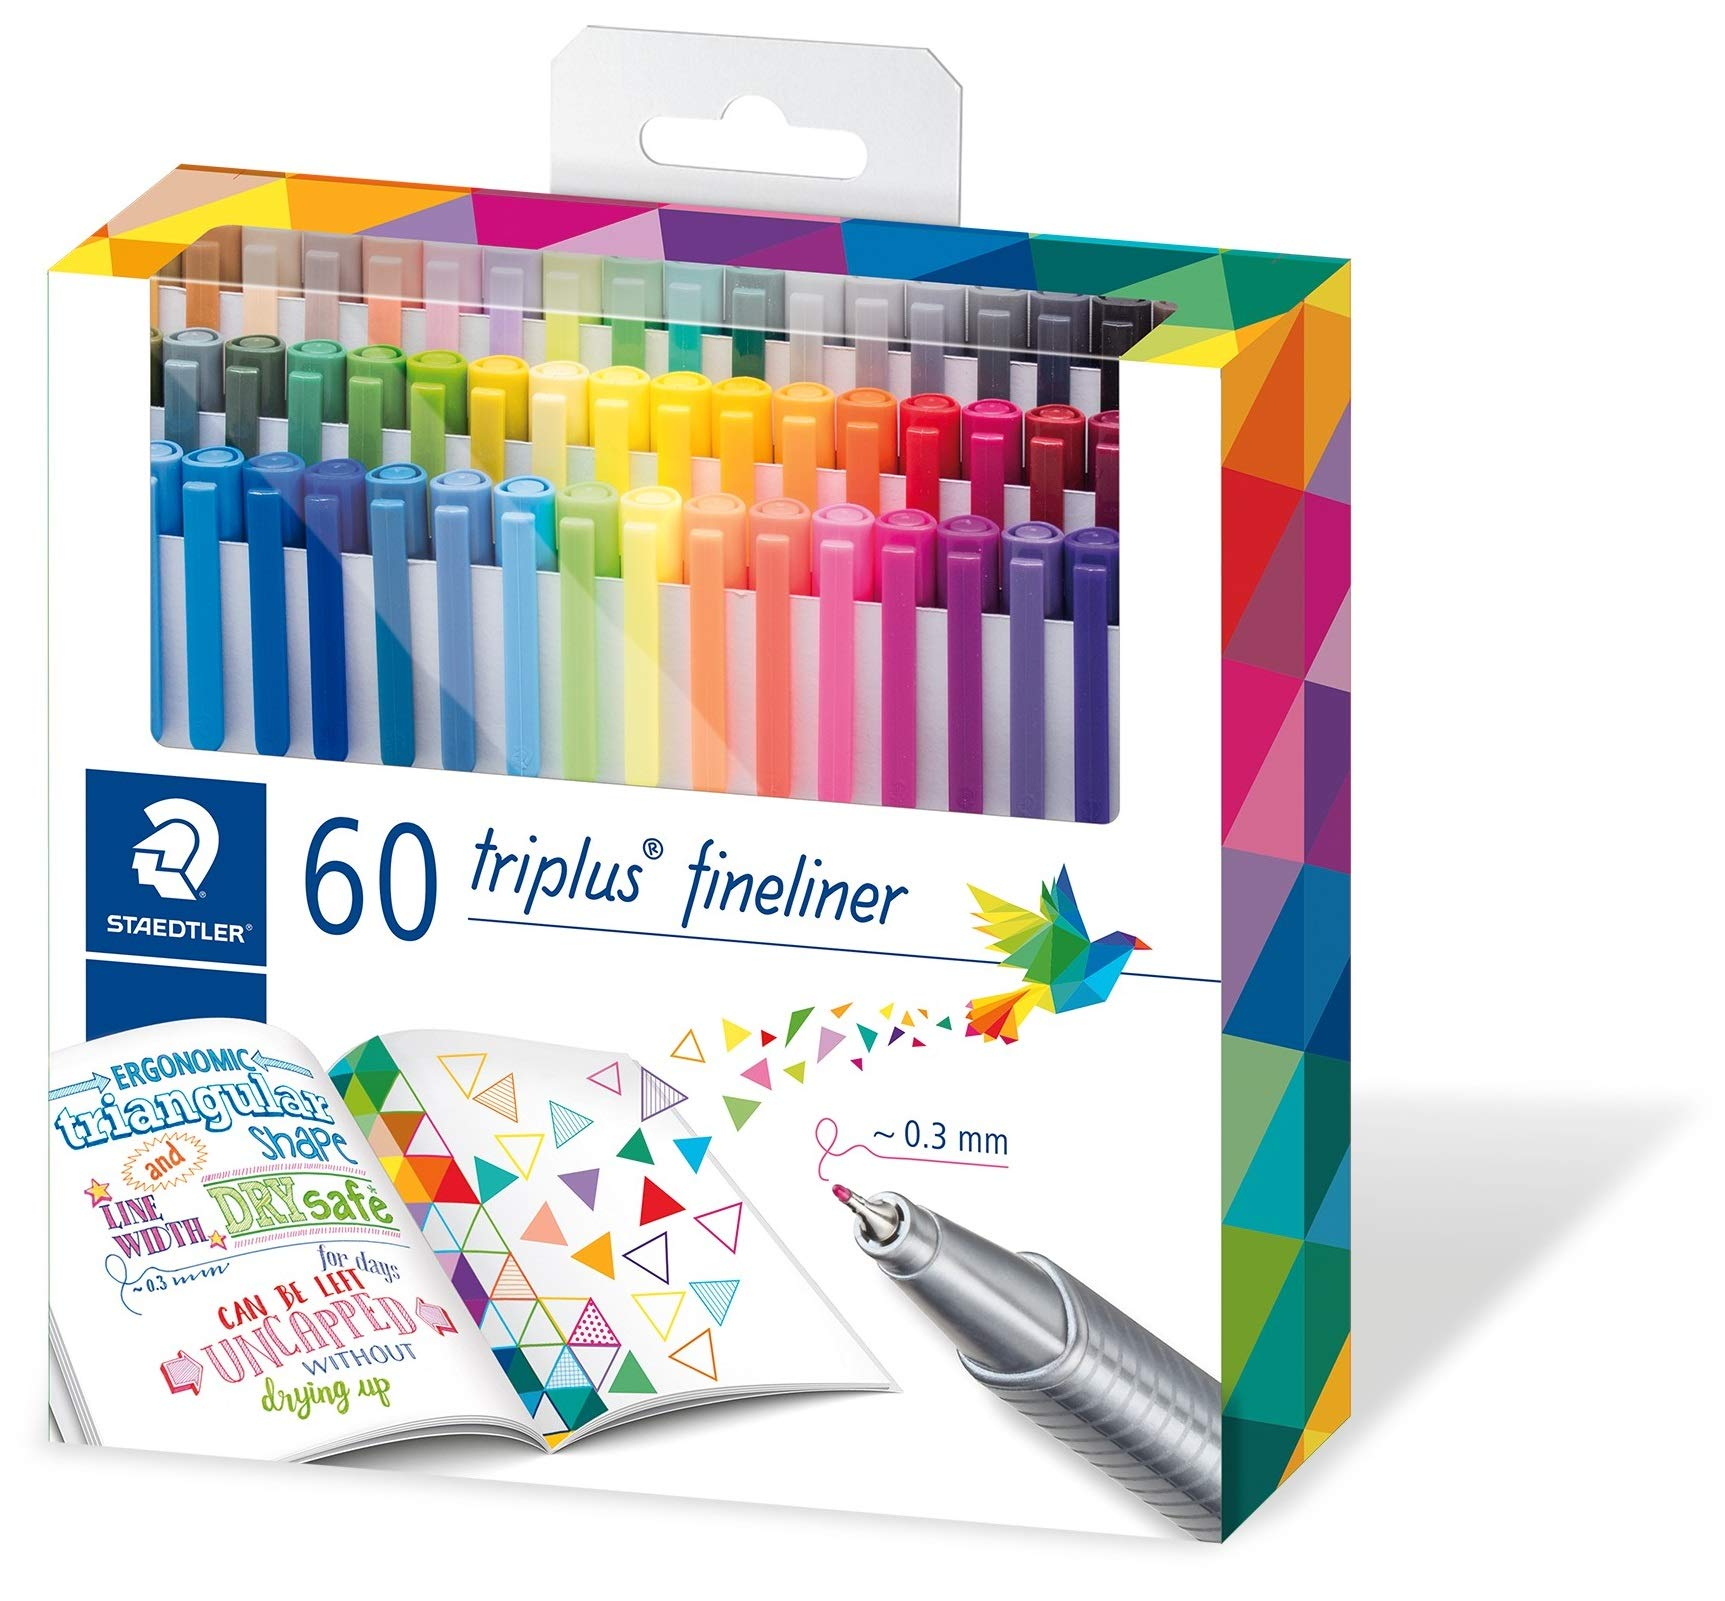 Staedtler triplus fineliner triangular, set with 60 brilliant colours, made in Germany, super fine, metal-clad tip, line width approx. 0.3 mm, 334 C60 by STAEDTLER